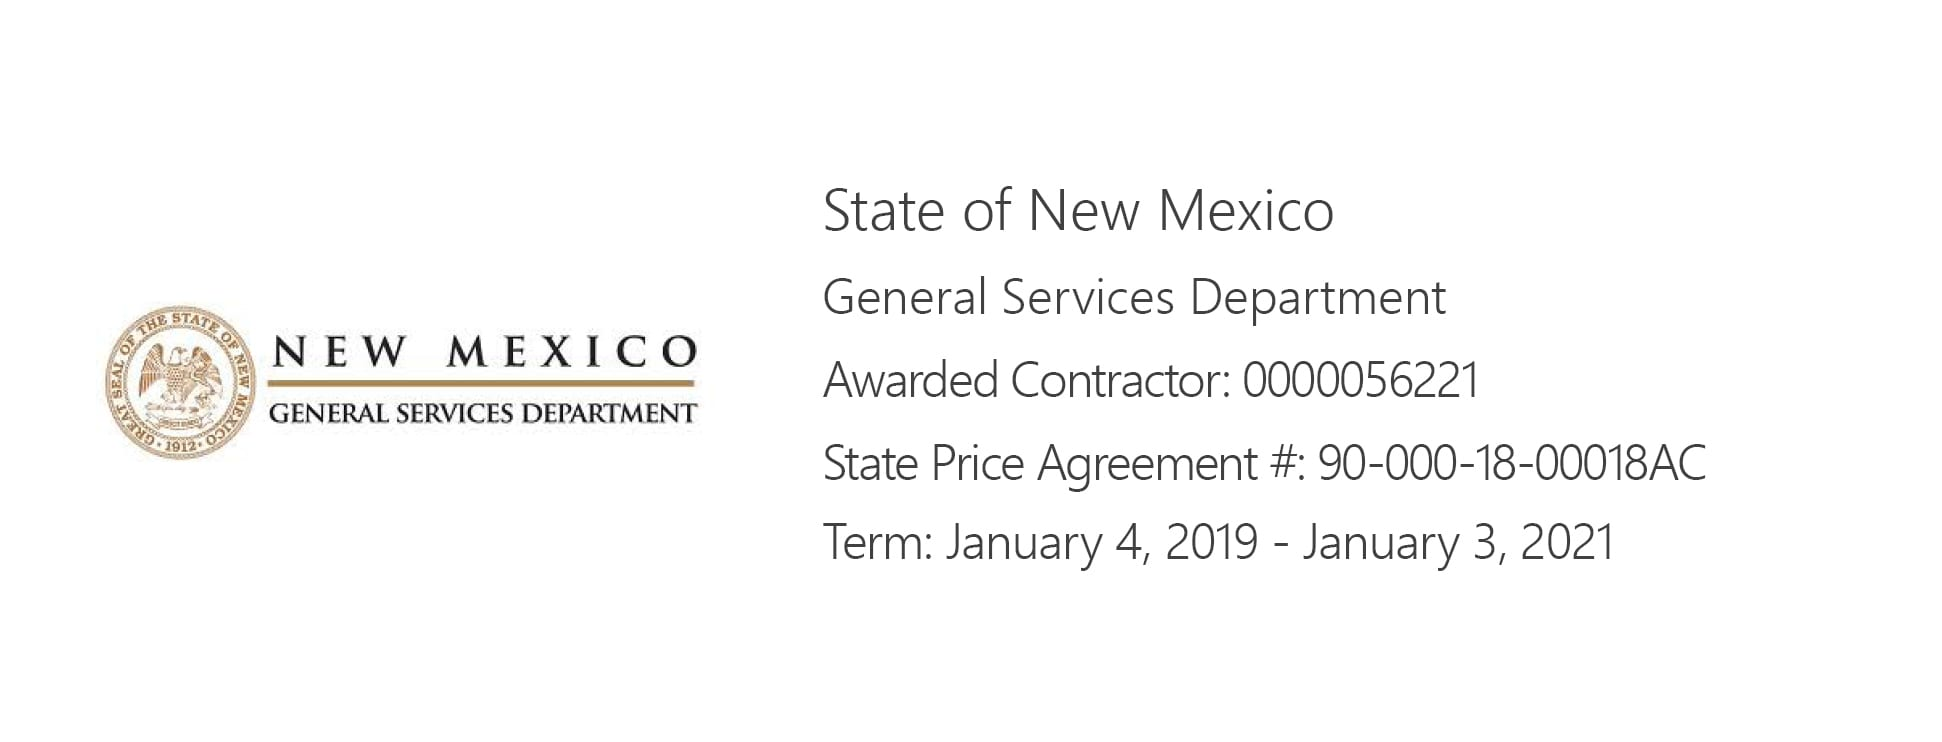 State of New Mexico Purchasing Agreement